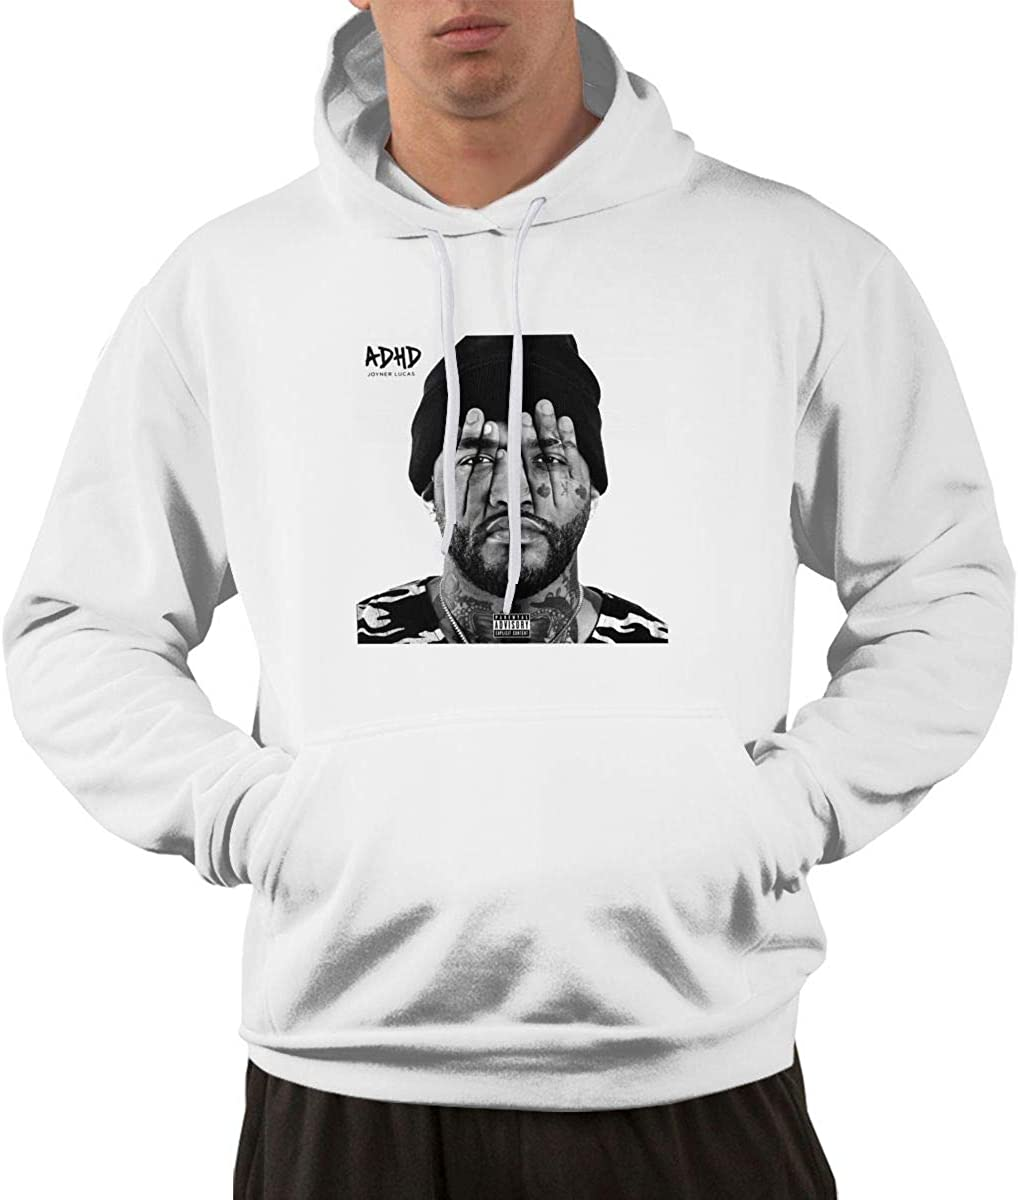 Amazon.com: RyanCSchmitt Joyner Lucas Unisex Hoodie Sweatshirt 3D Printed  Hoodies Pullover Sweatshirt with Pockets: Clothing